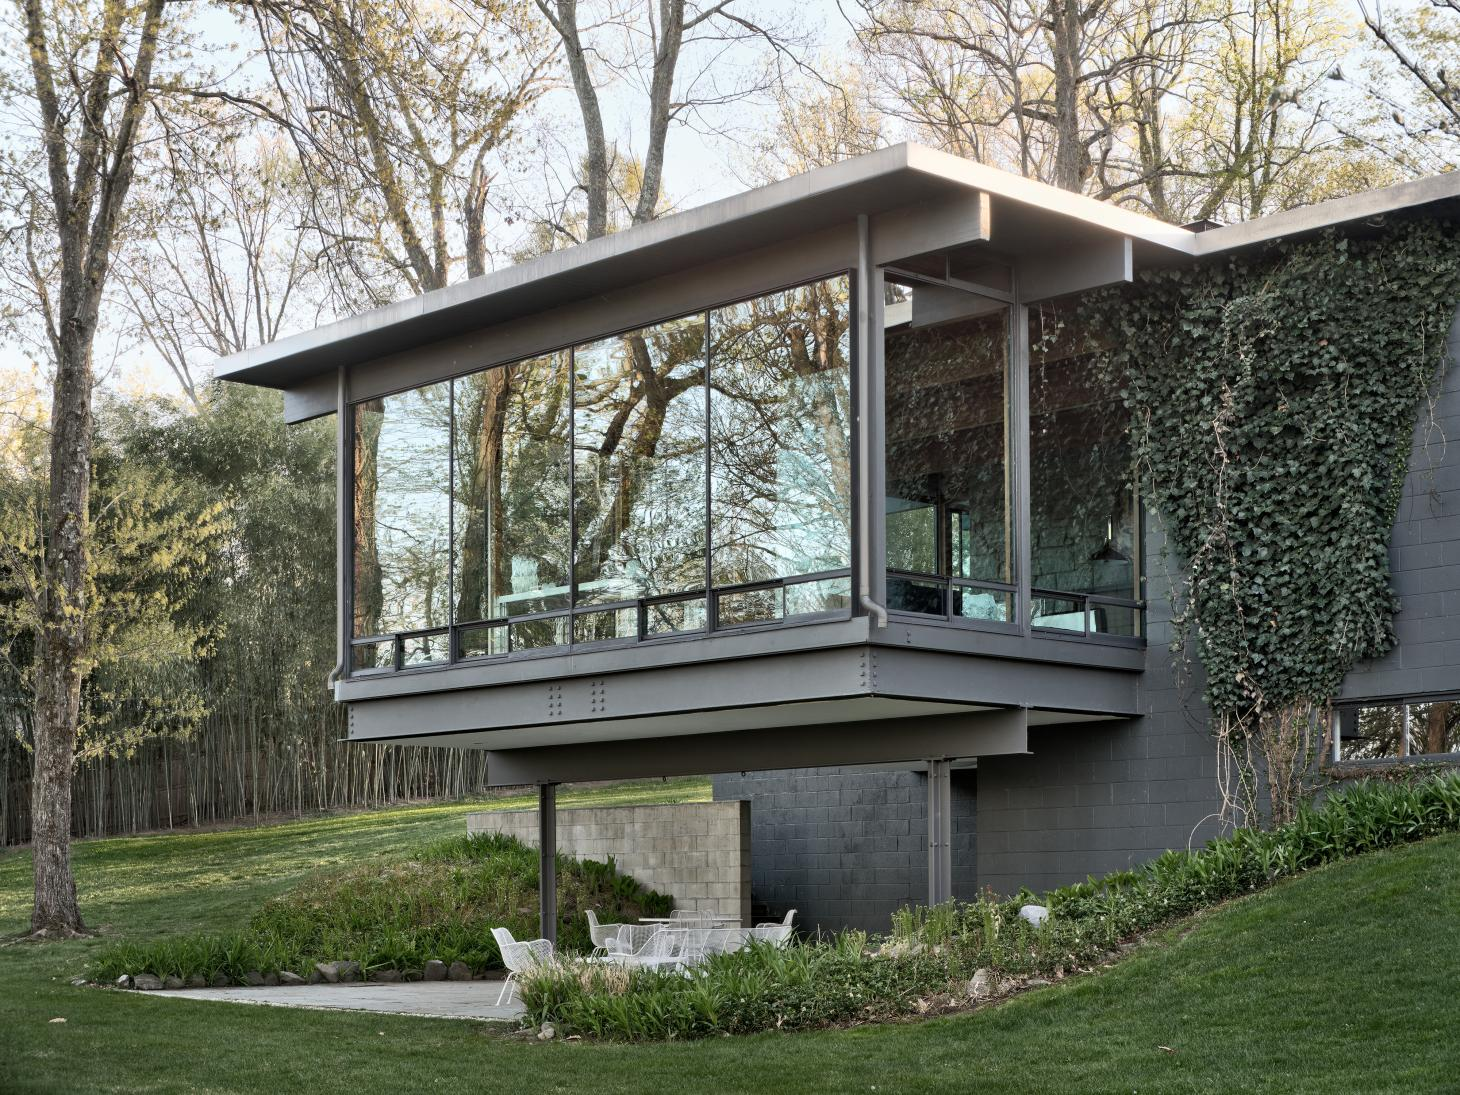 Modernist glass and steel house among greenery designed by Gerald Luss